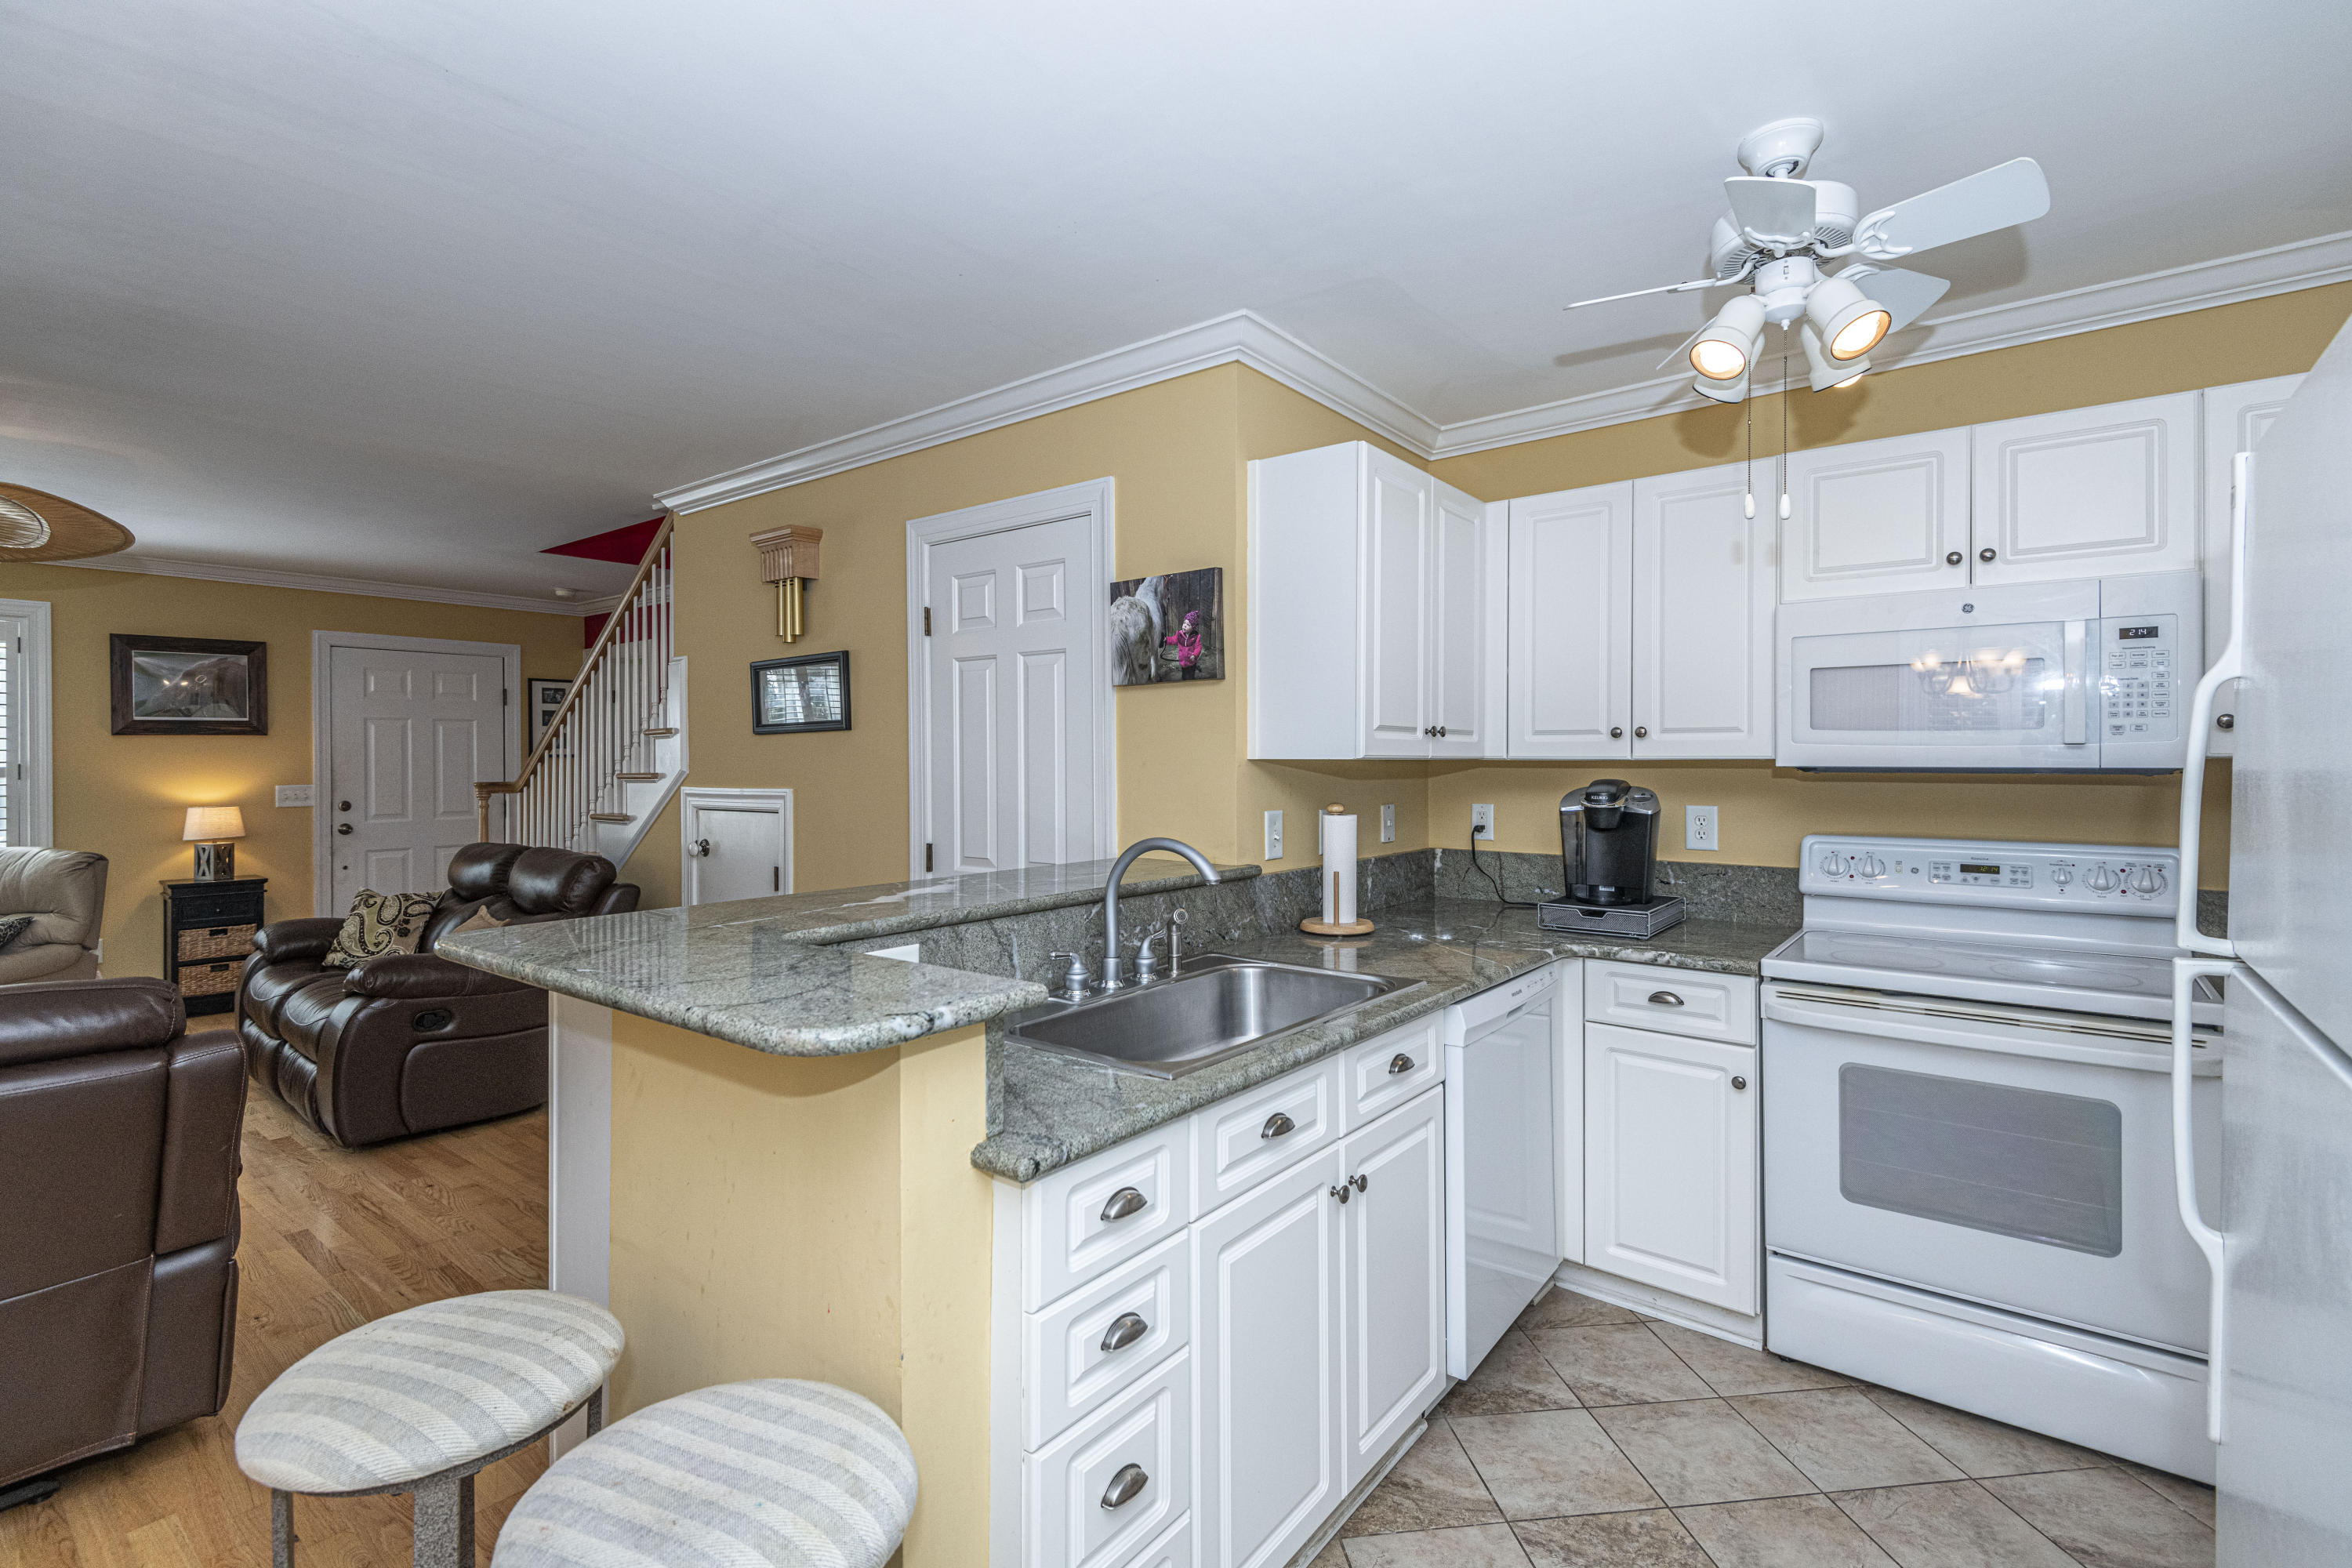 The Reserve at Wando East Homes For Sale - 1681 Lauda, Mount Pleasant, SC - 20